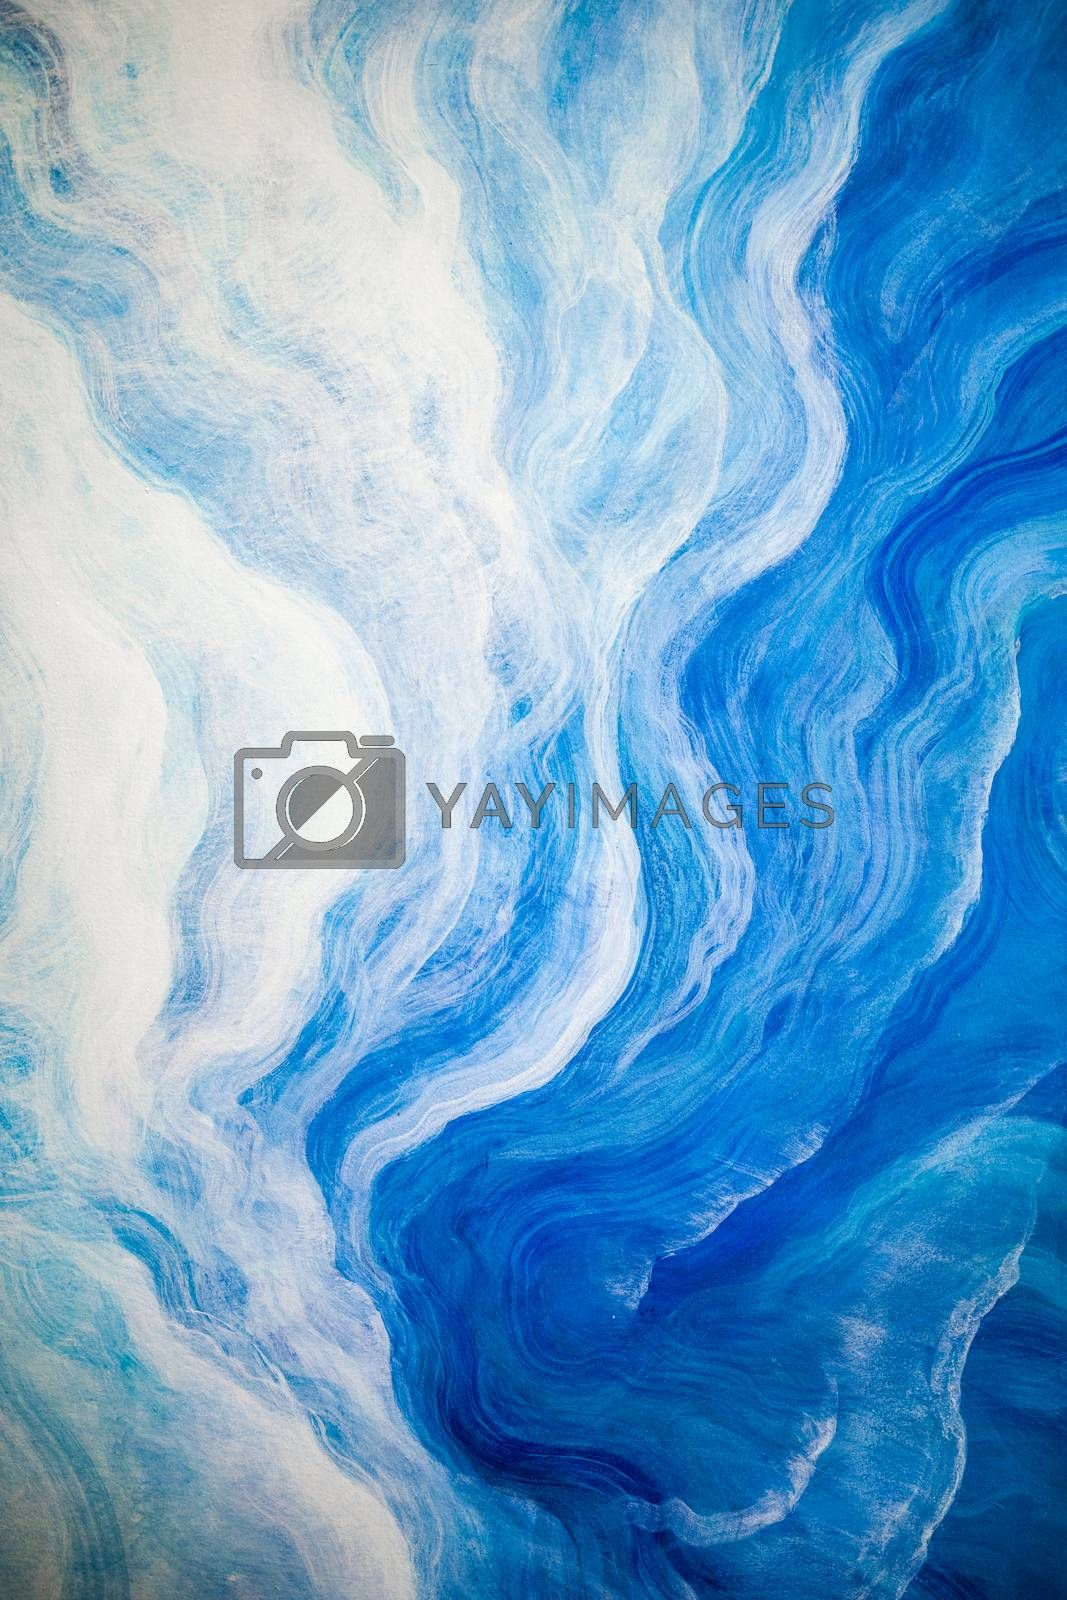 Vertical scene of abstract background of white and blue wave painted on wall.